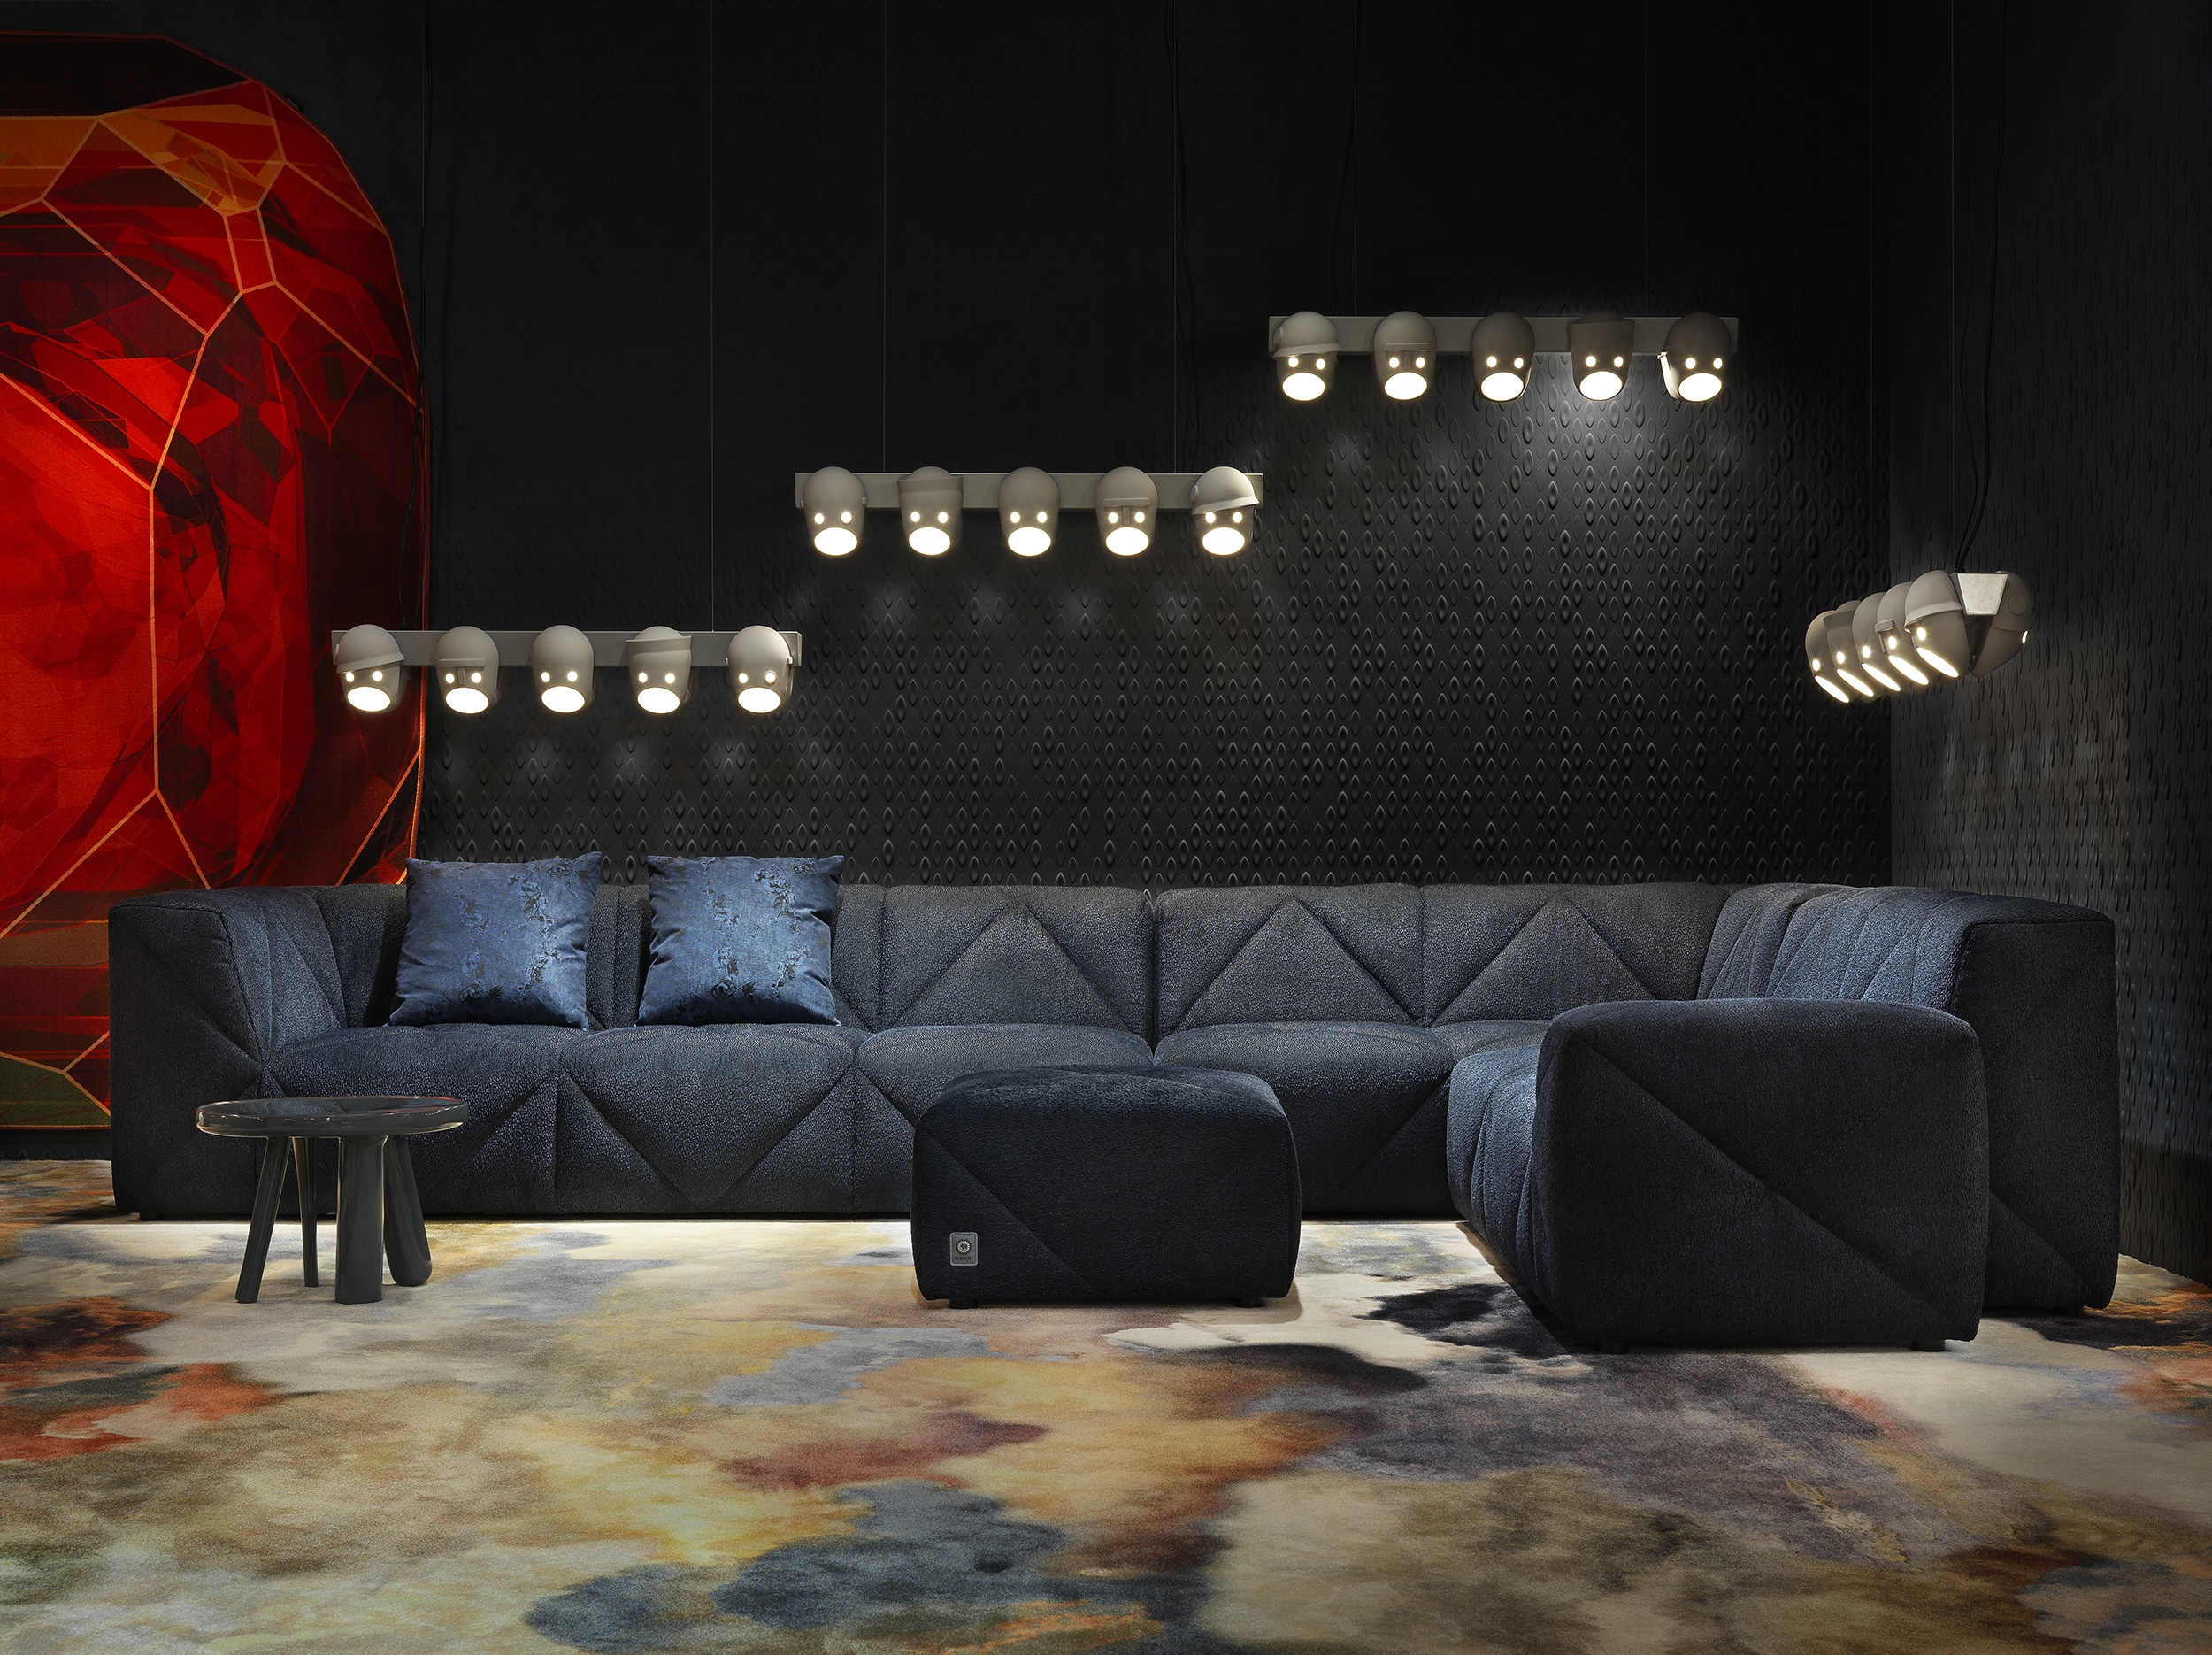 moooi - BFF Sofa & The Party